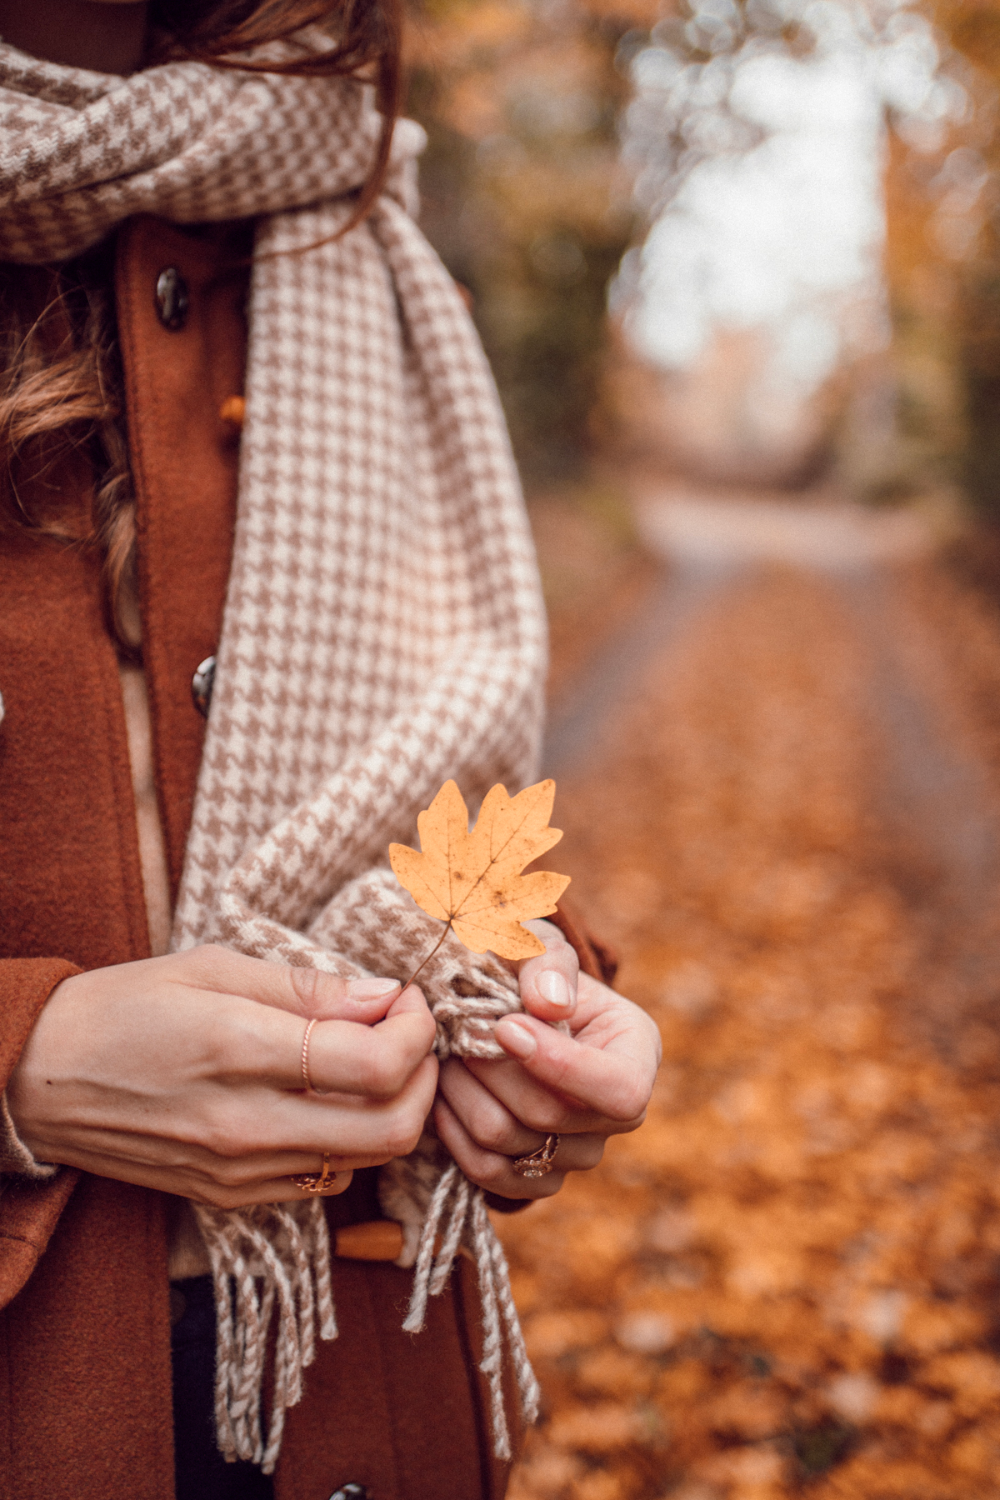 J'ose enfin les cuissardes cet automne ! — Mode and The City #helloautumn